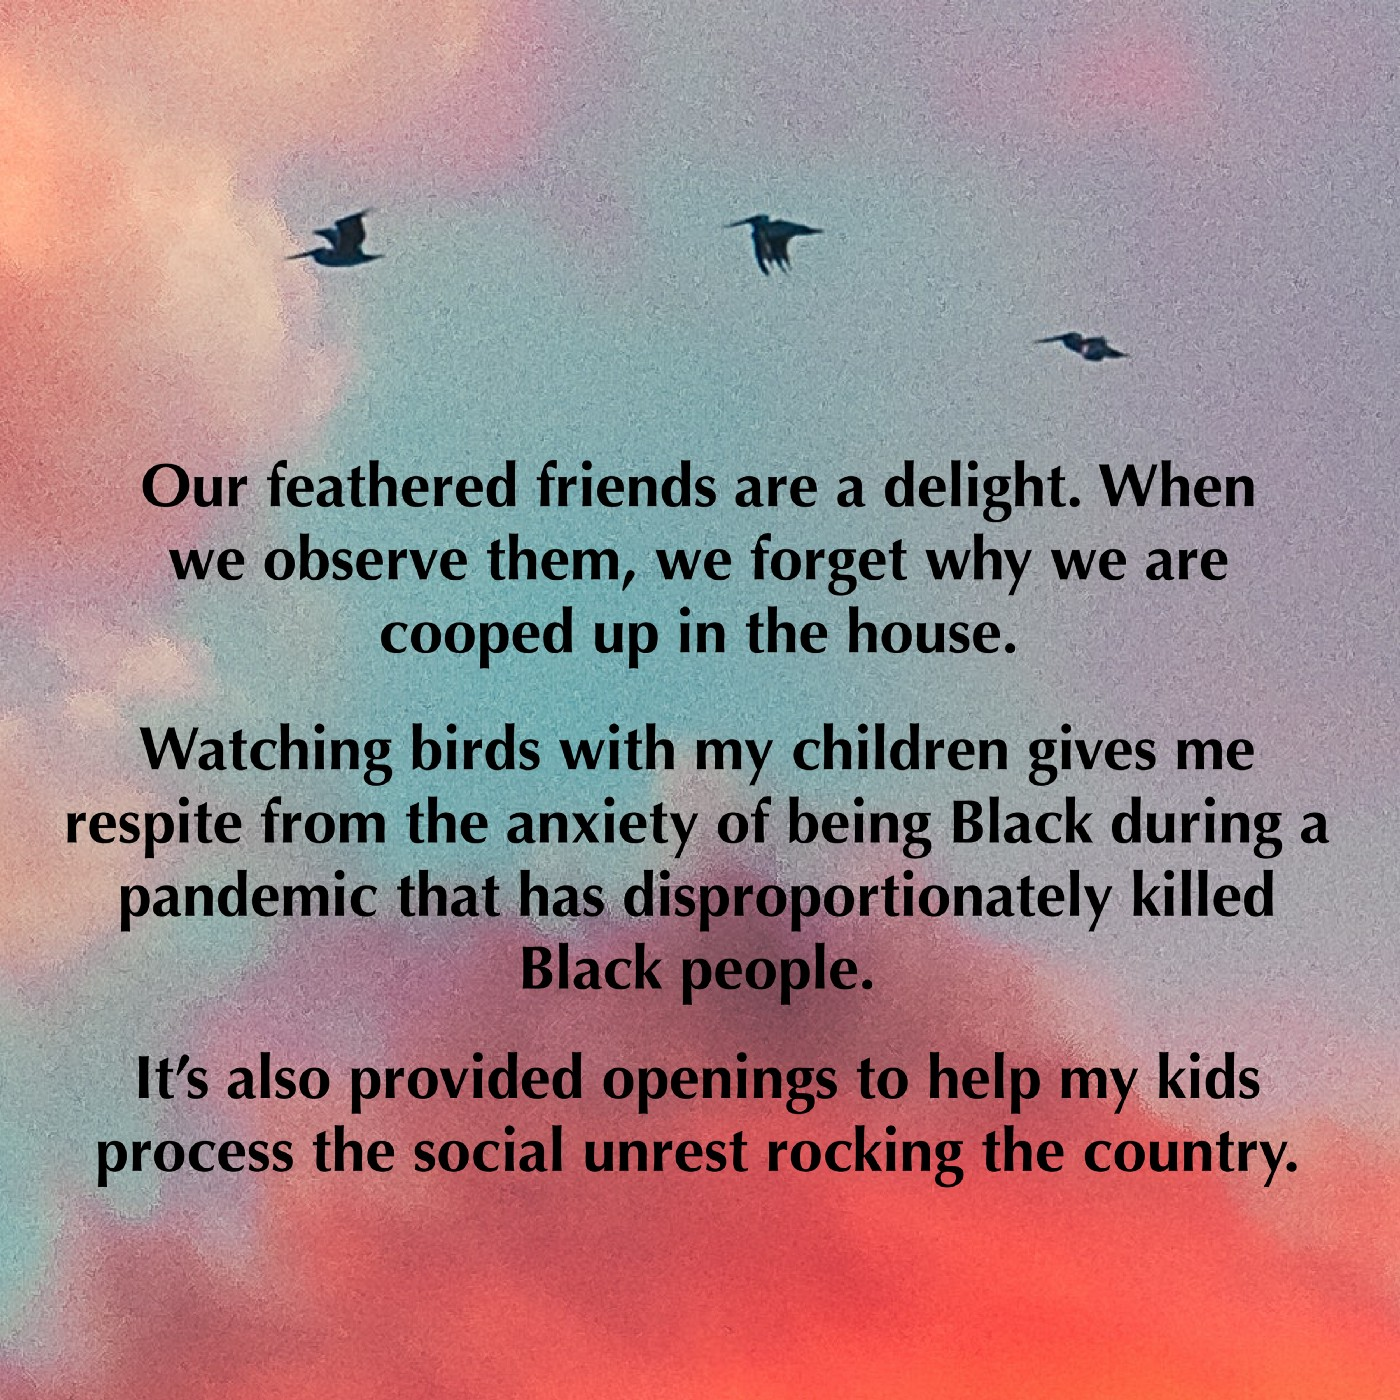 A quote from the linked story, about family  birding being a respite for a a Black family and a way to process current events